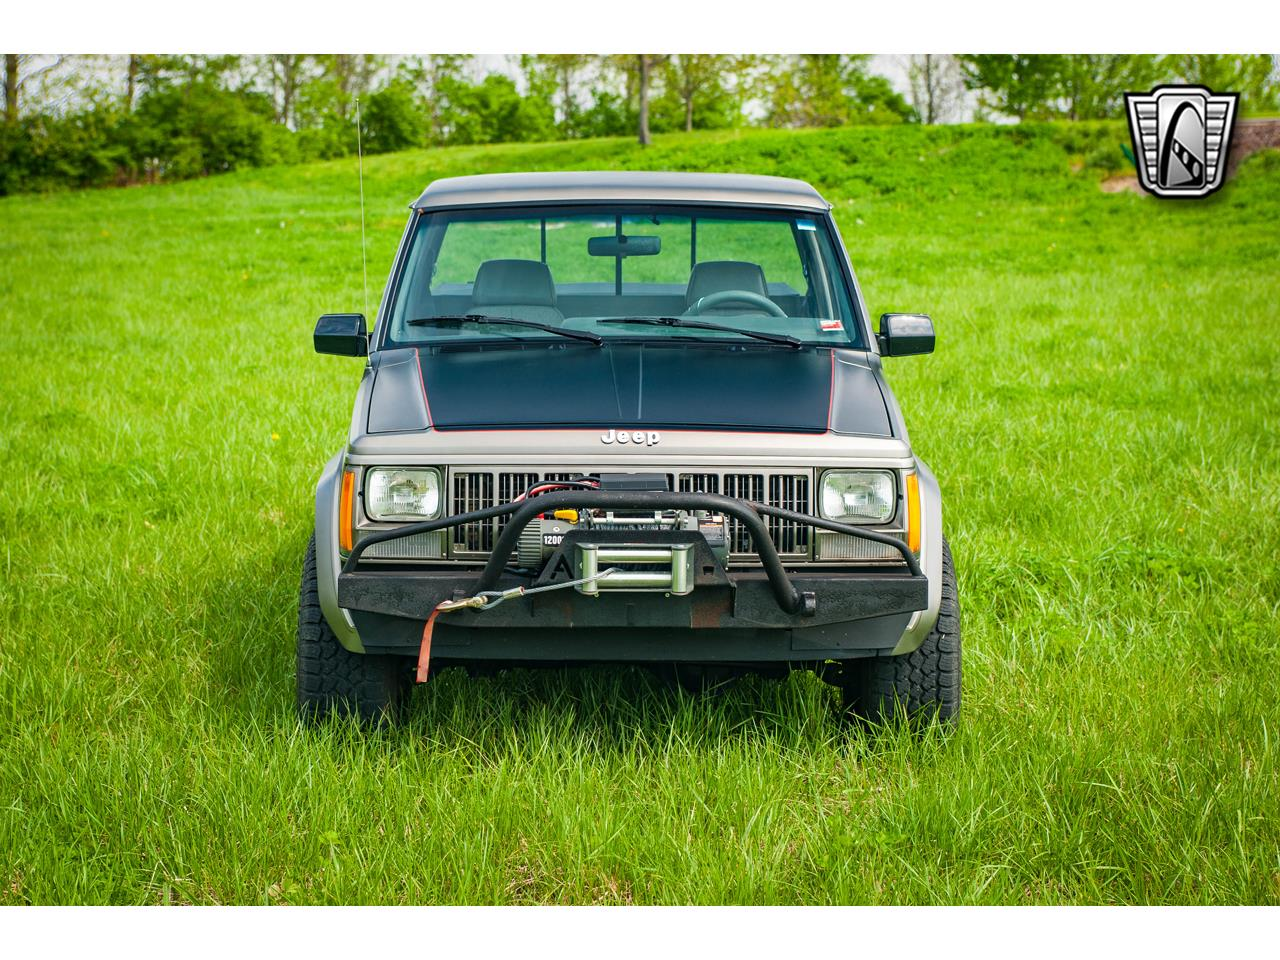 Large Picture of 1990 Comanche located in O'Fallon Illinois - $16,500.00 Offered by Gateway Classic Cars - St. Louis - QB8P